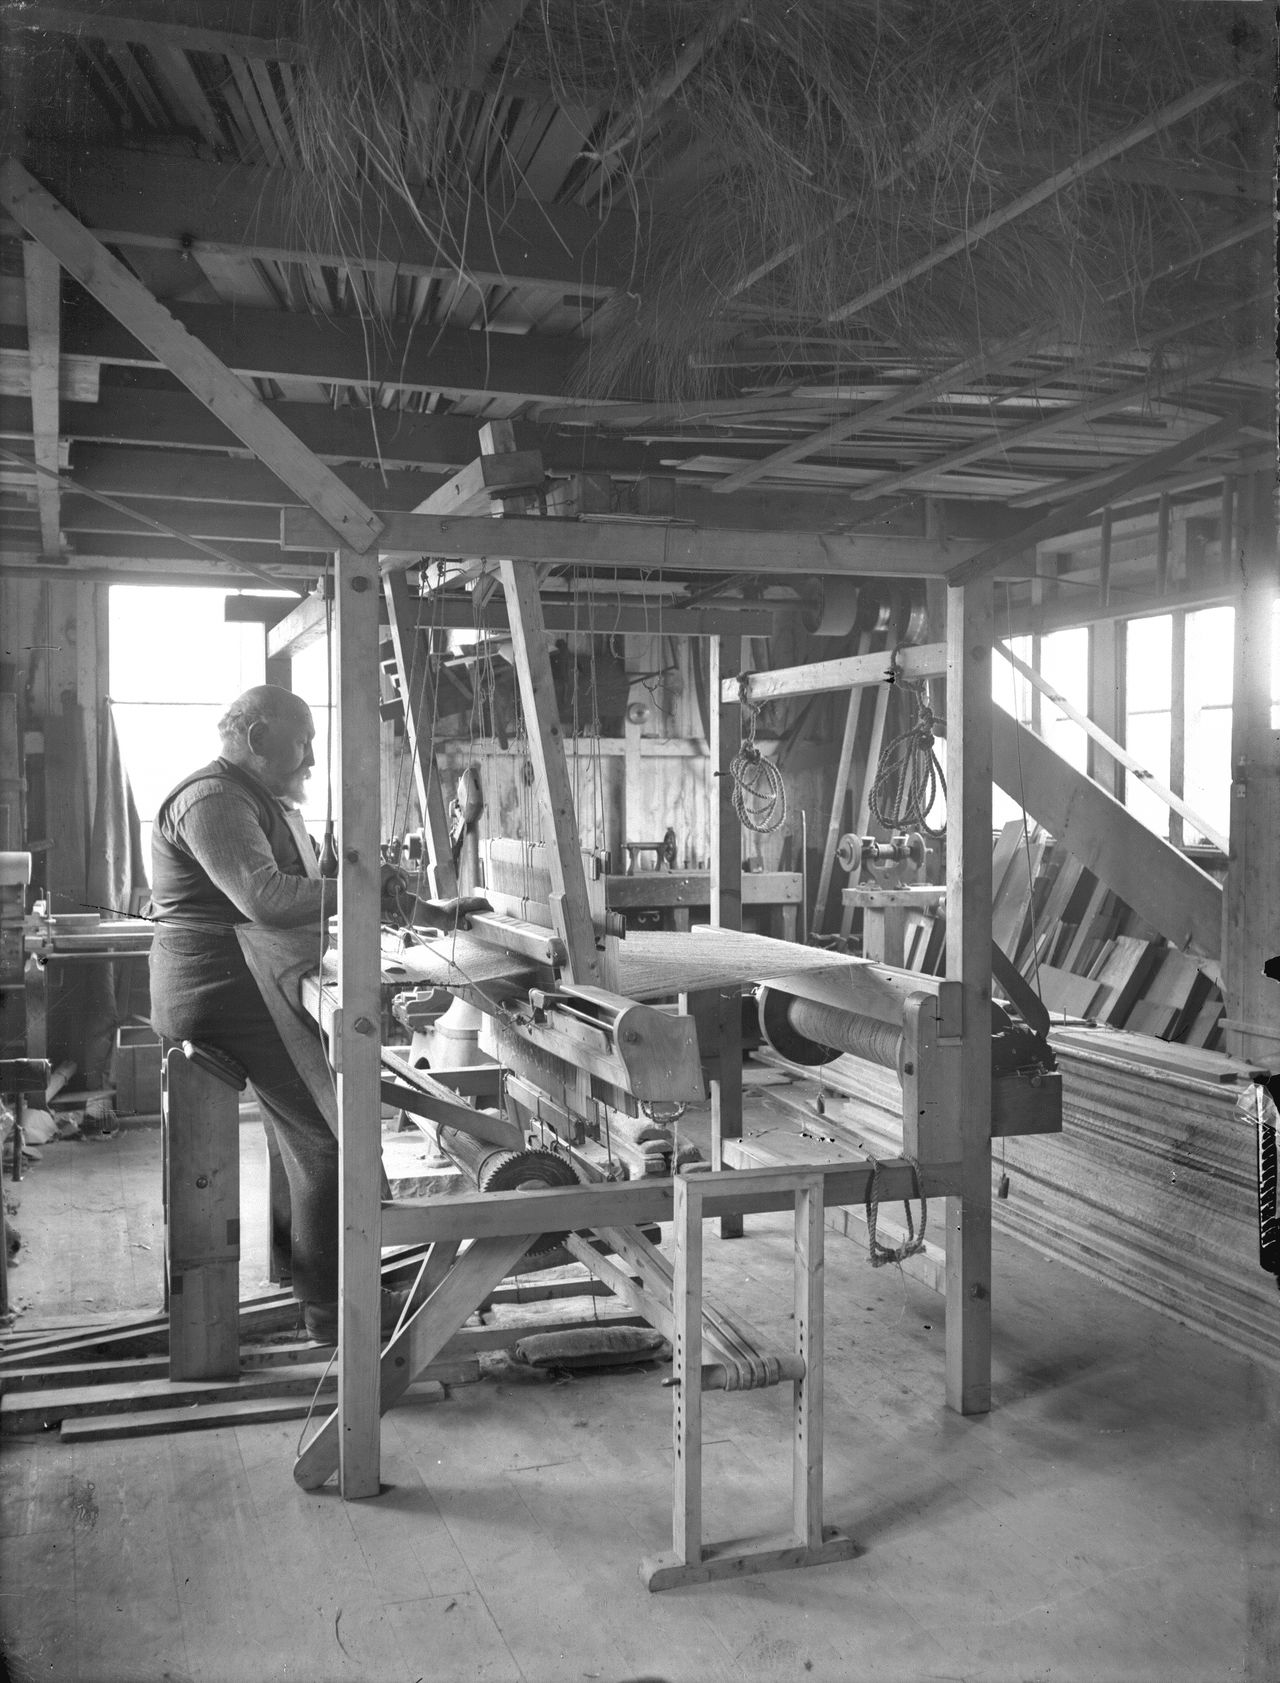 Black and white photo of a man working in a studio.